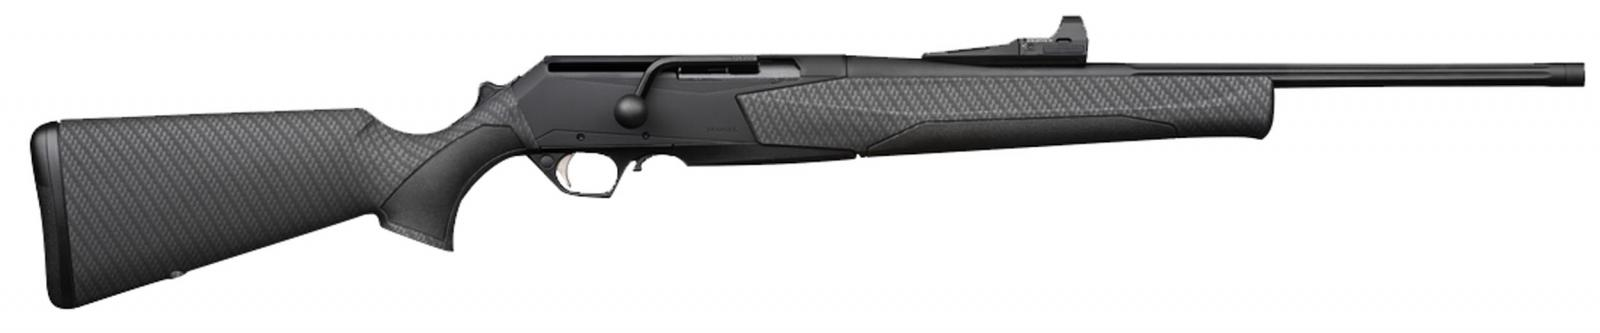 Carabine BROWNING MARAL REFLEX COMPO Cal 30-06